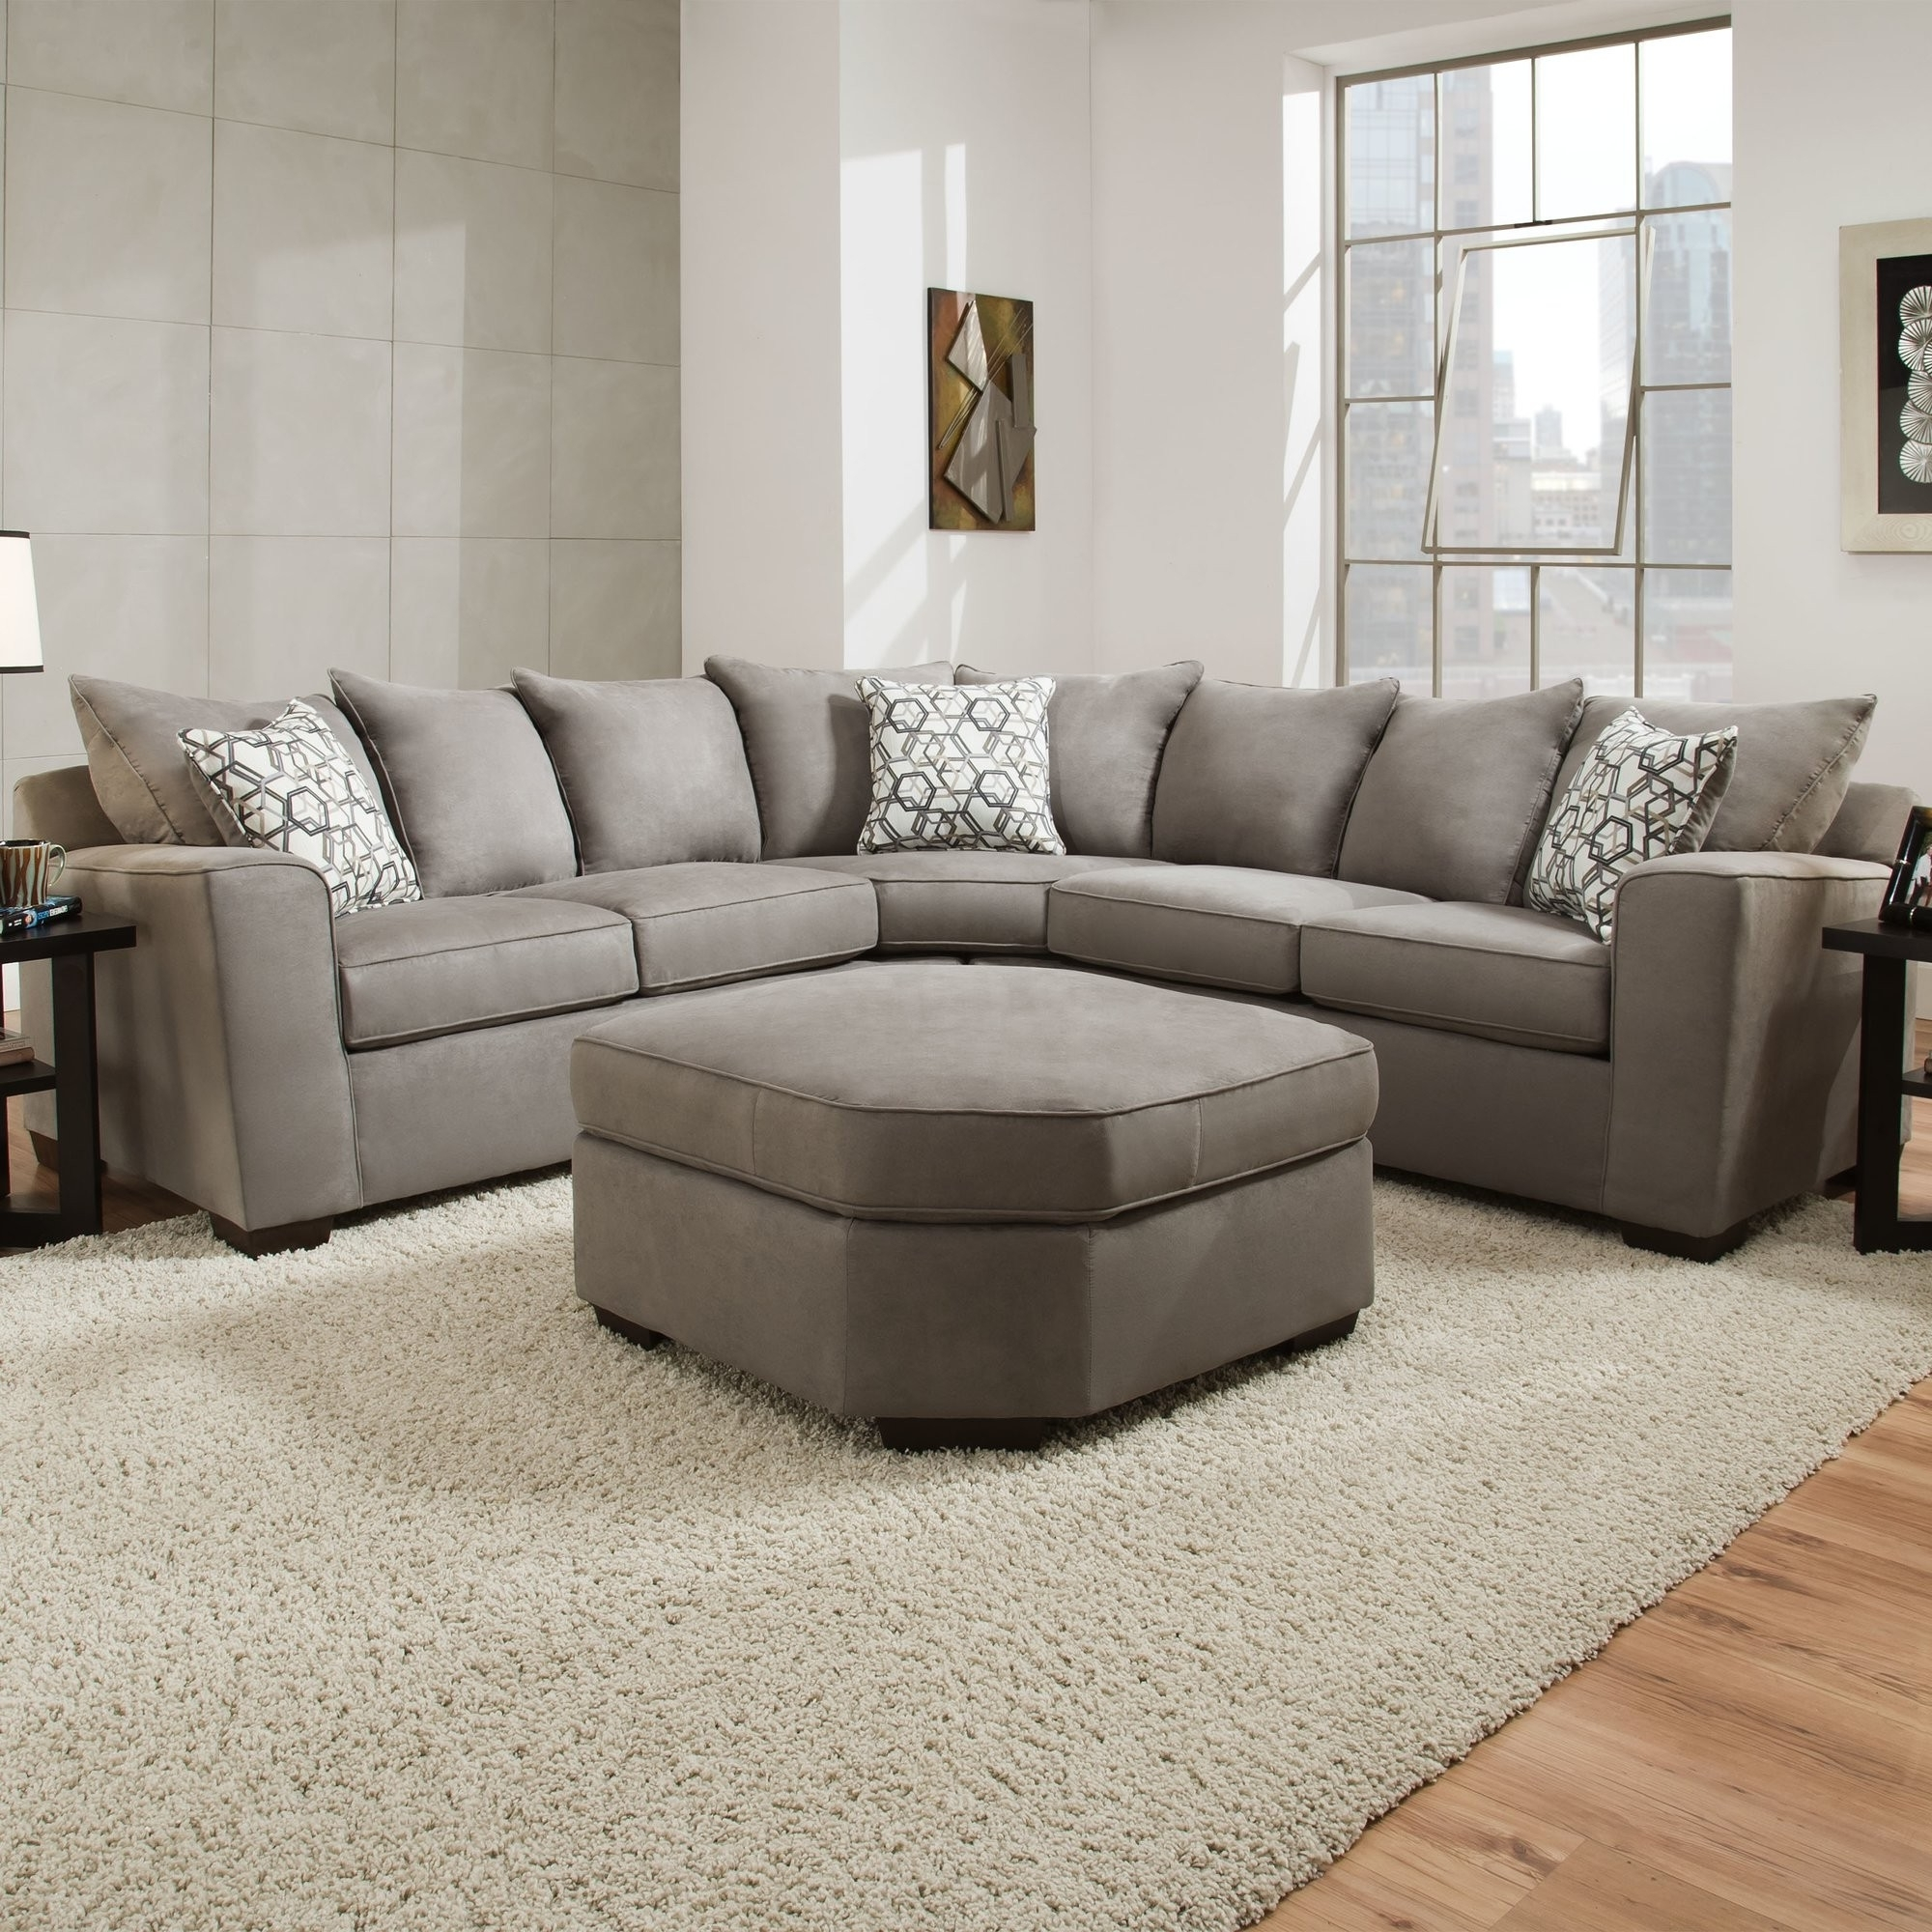 Genial Recent Fresh Simmons Sectional Sofa Joss And Main U2013 Buildsimplehome  Throughout Joss And Main Sectional Sofas